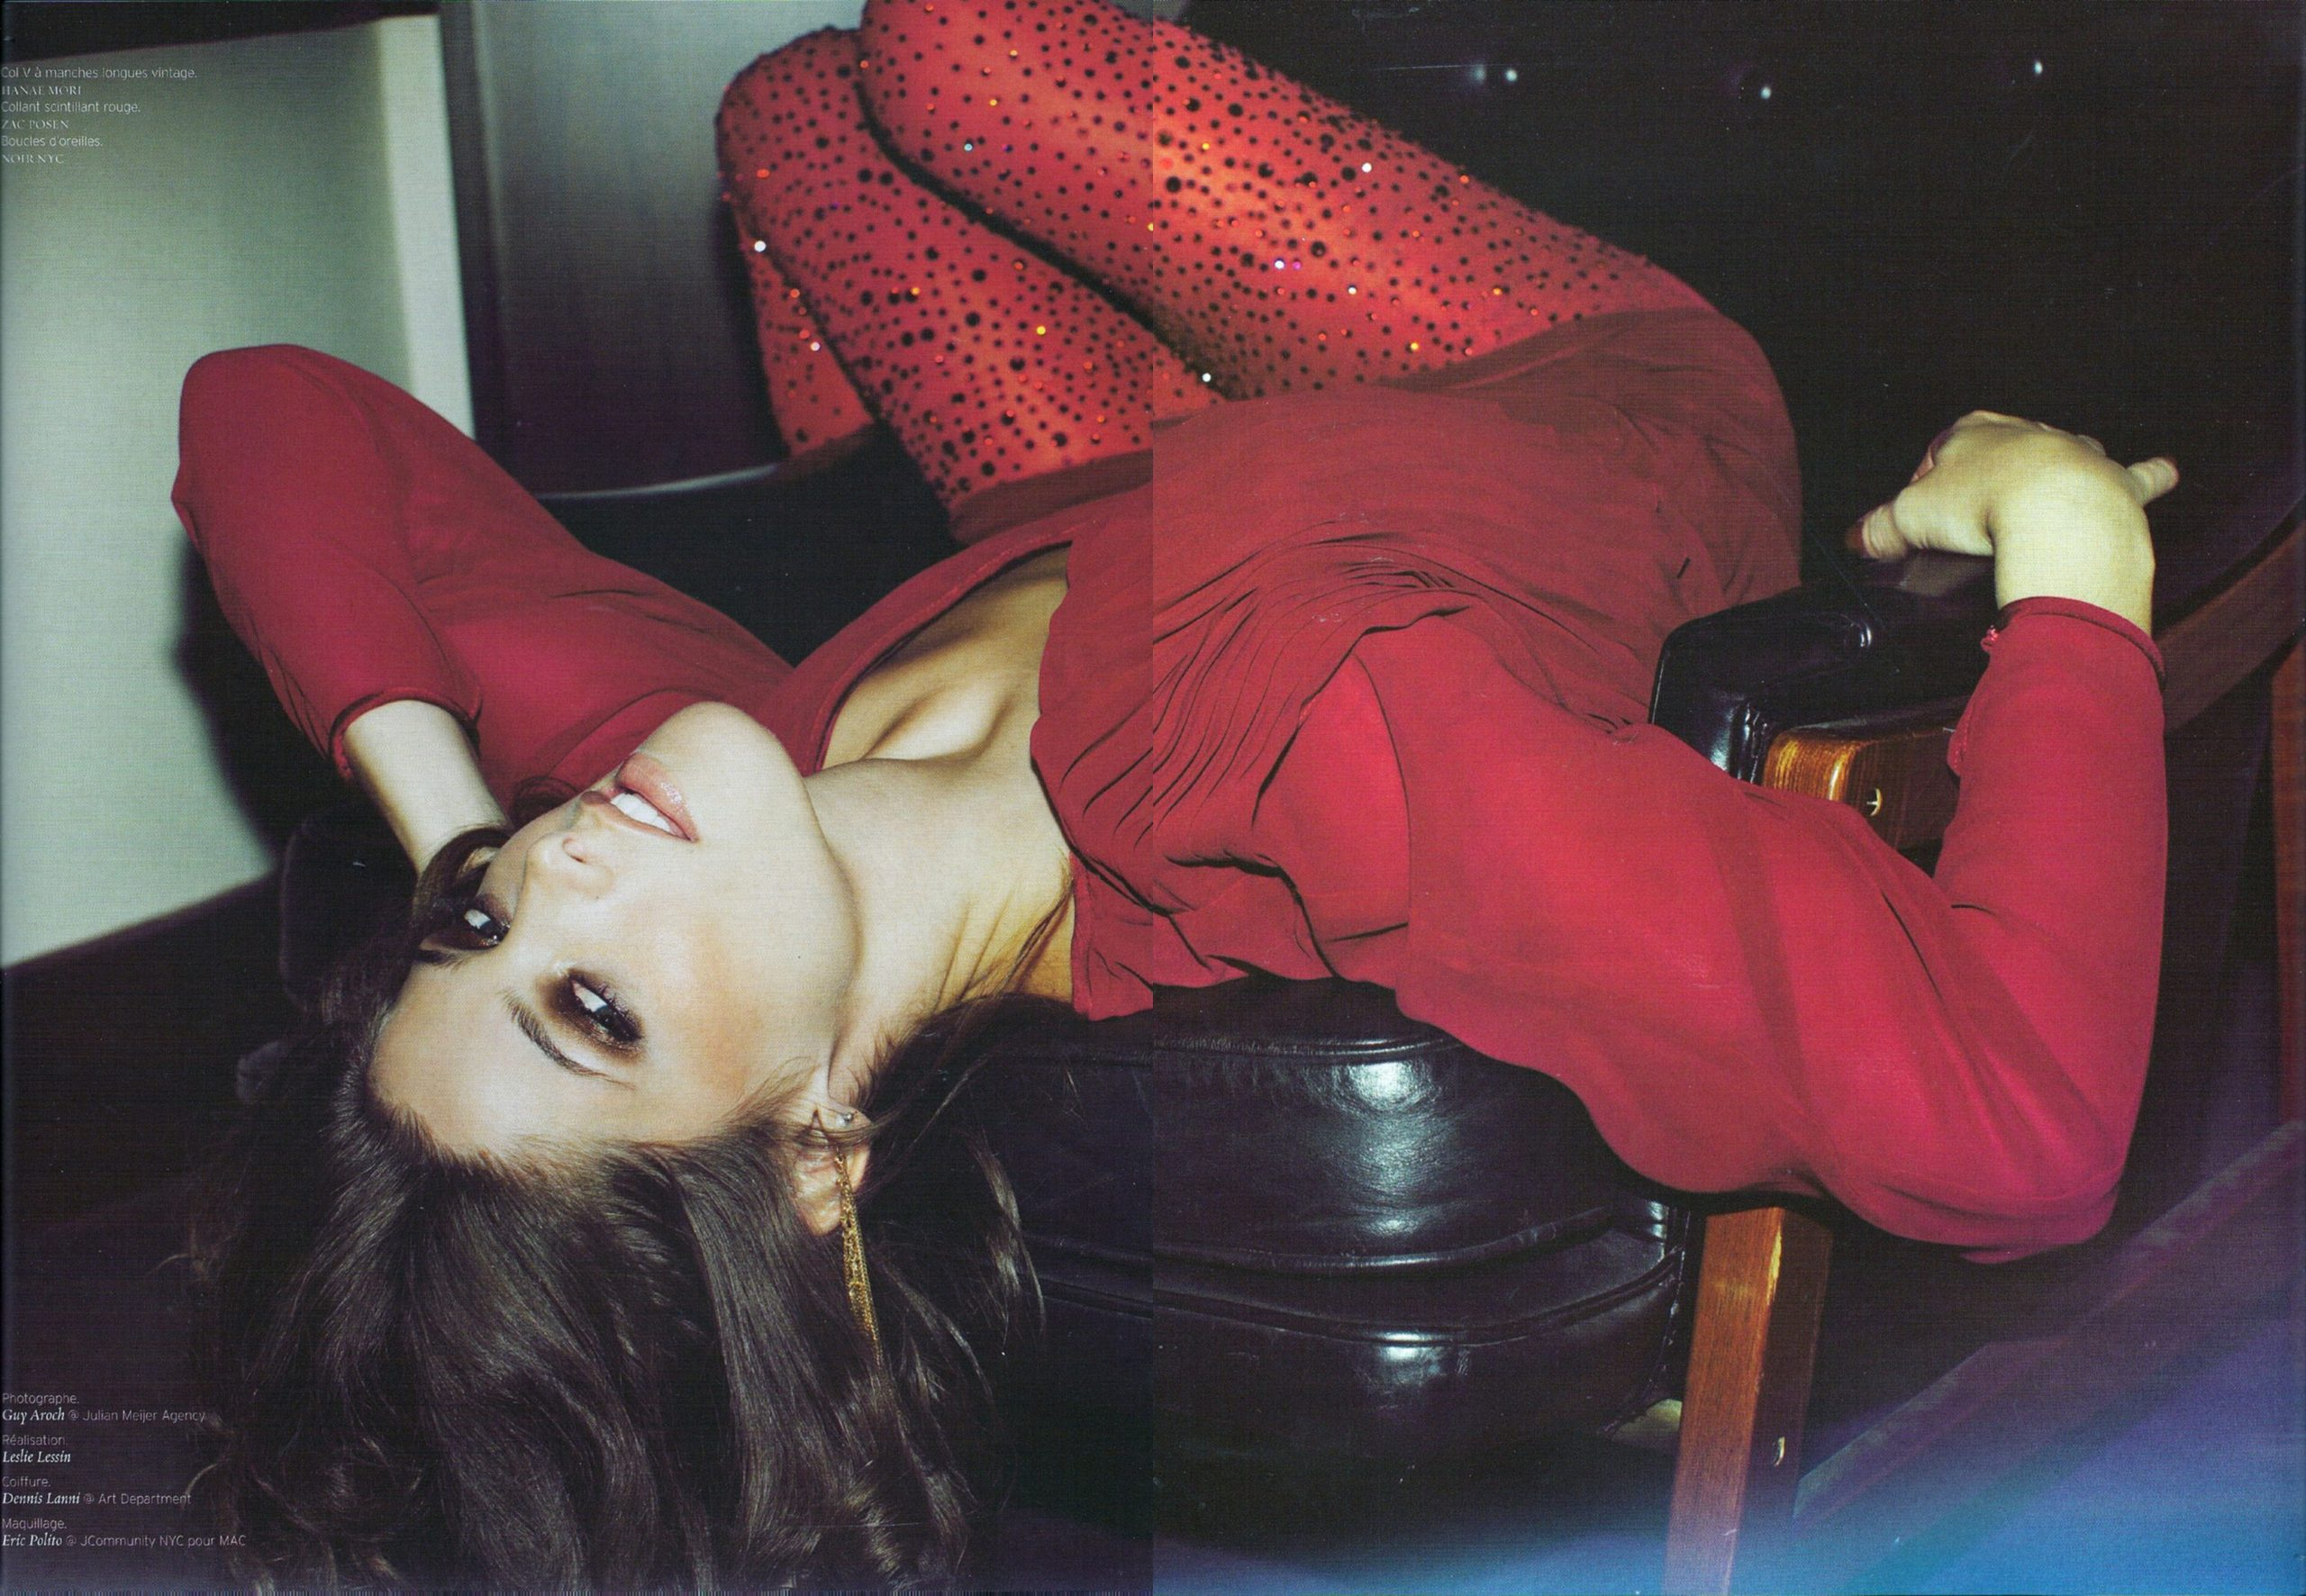 http://images2.fanpop.com/image/photos/8800000/Ash-s-scans-of-a-new-photoshoot-for-a-french-mode-mag-twilight-series-8884187-2560-1772.jpg